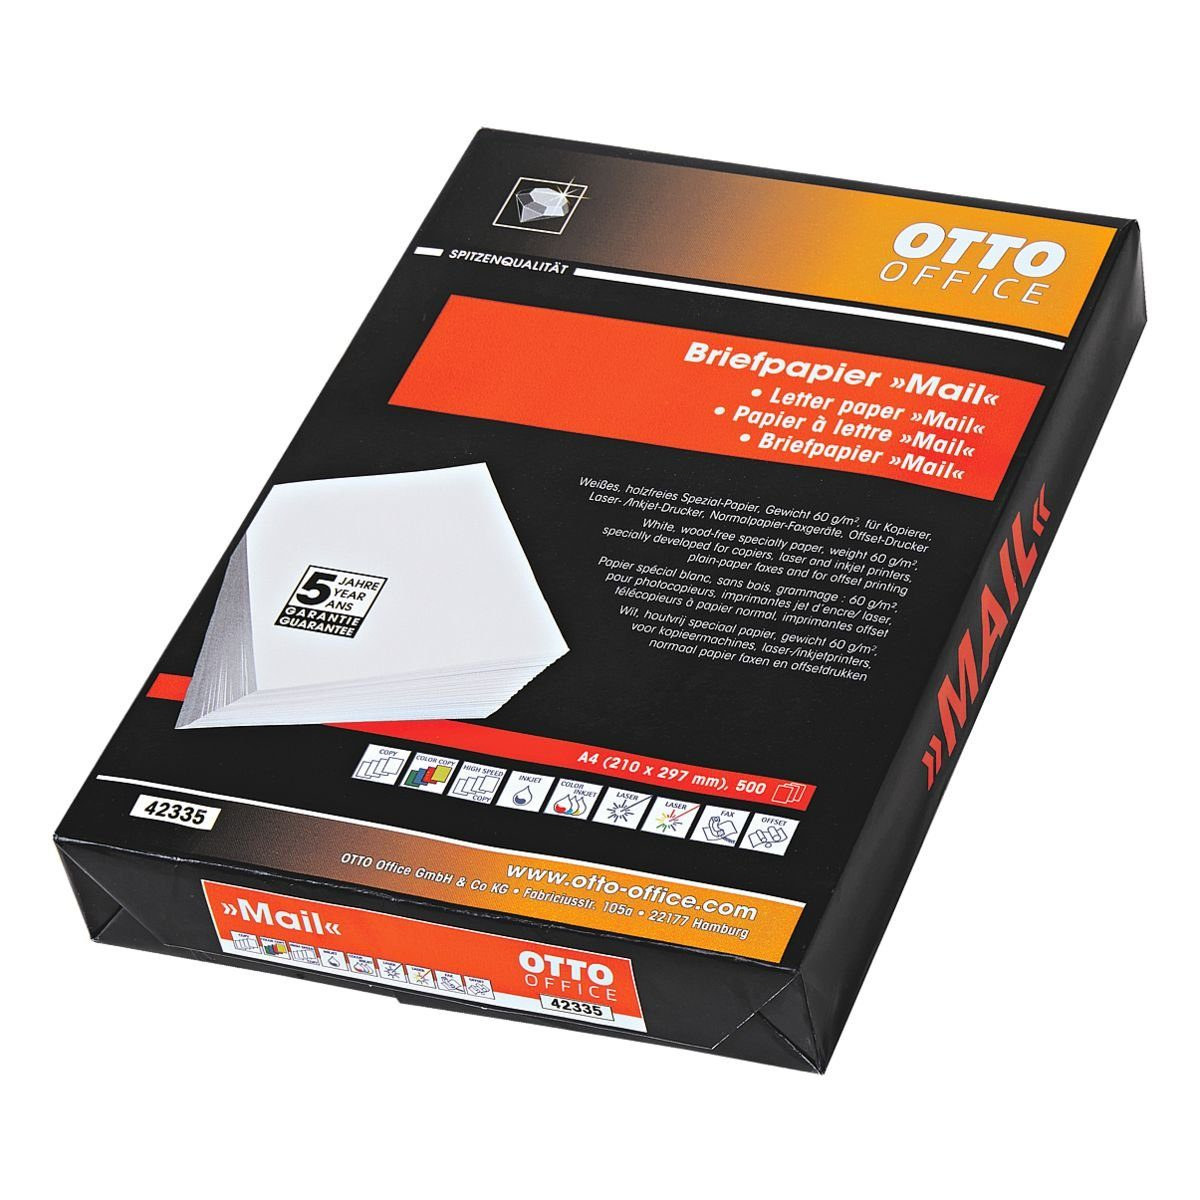 OTTO Office Premium Multifunktionales Briefpapier »MAIL«